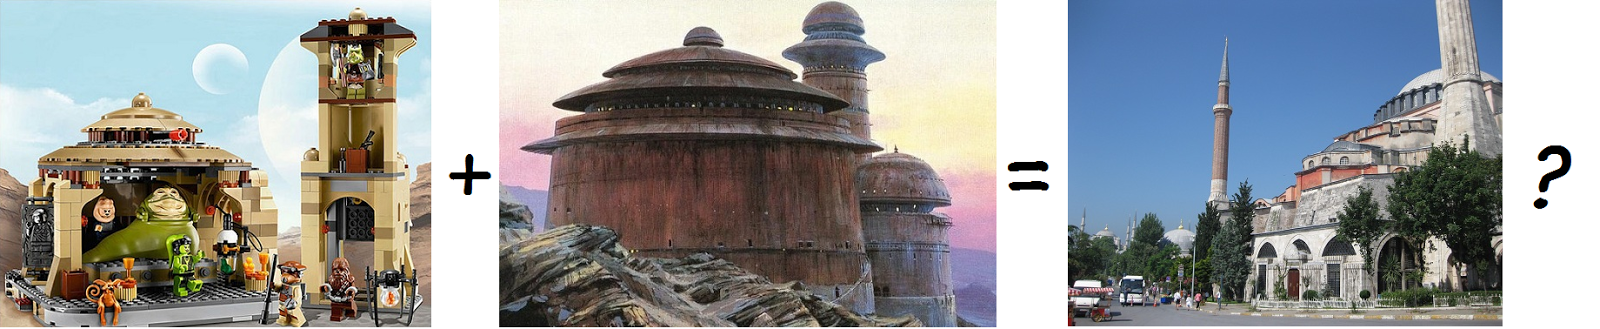 Top 10: The architecture of Star Wars   Aya+Sofya+Jabba+Lego+offensive